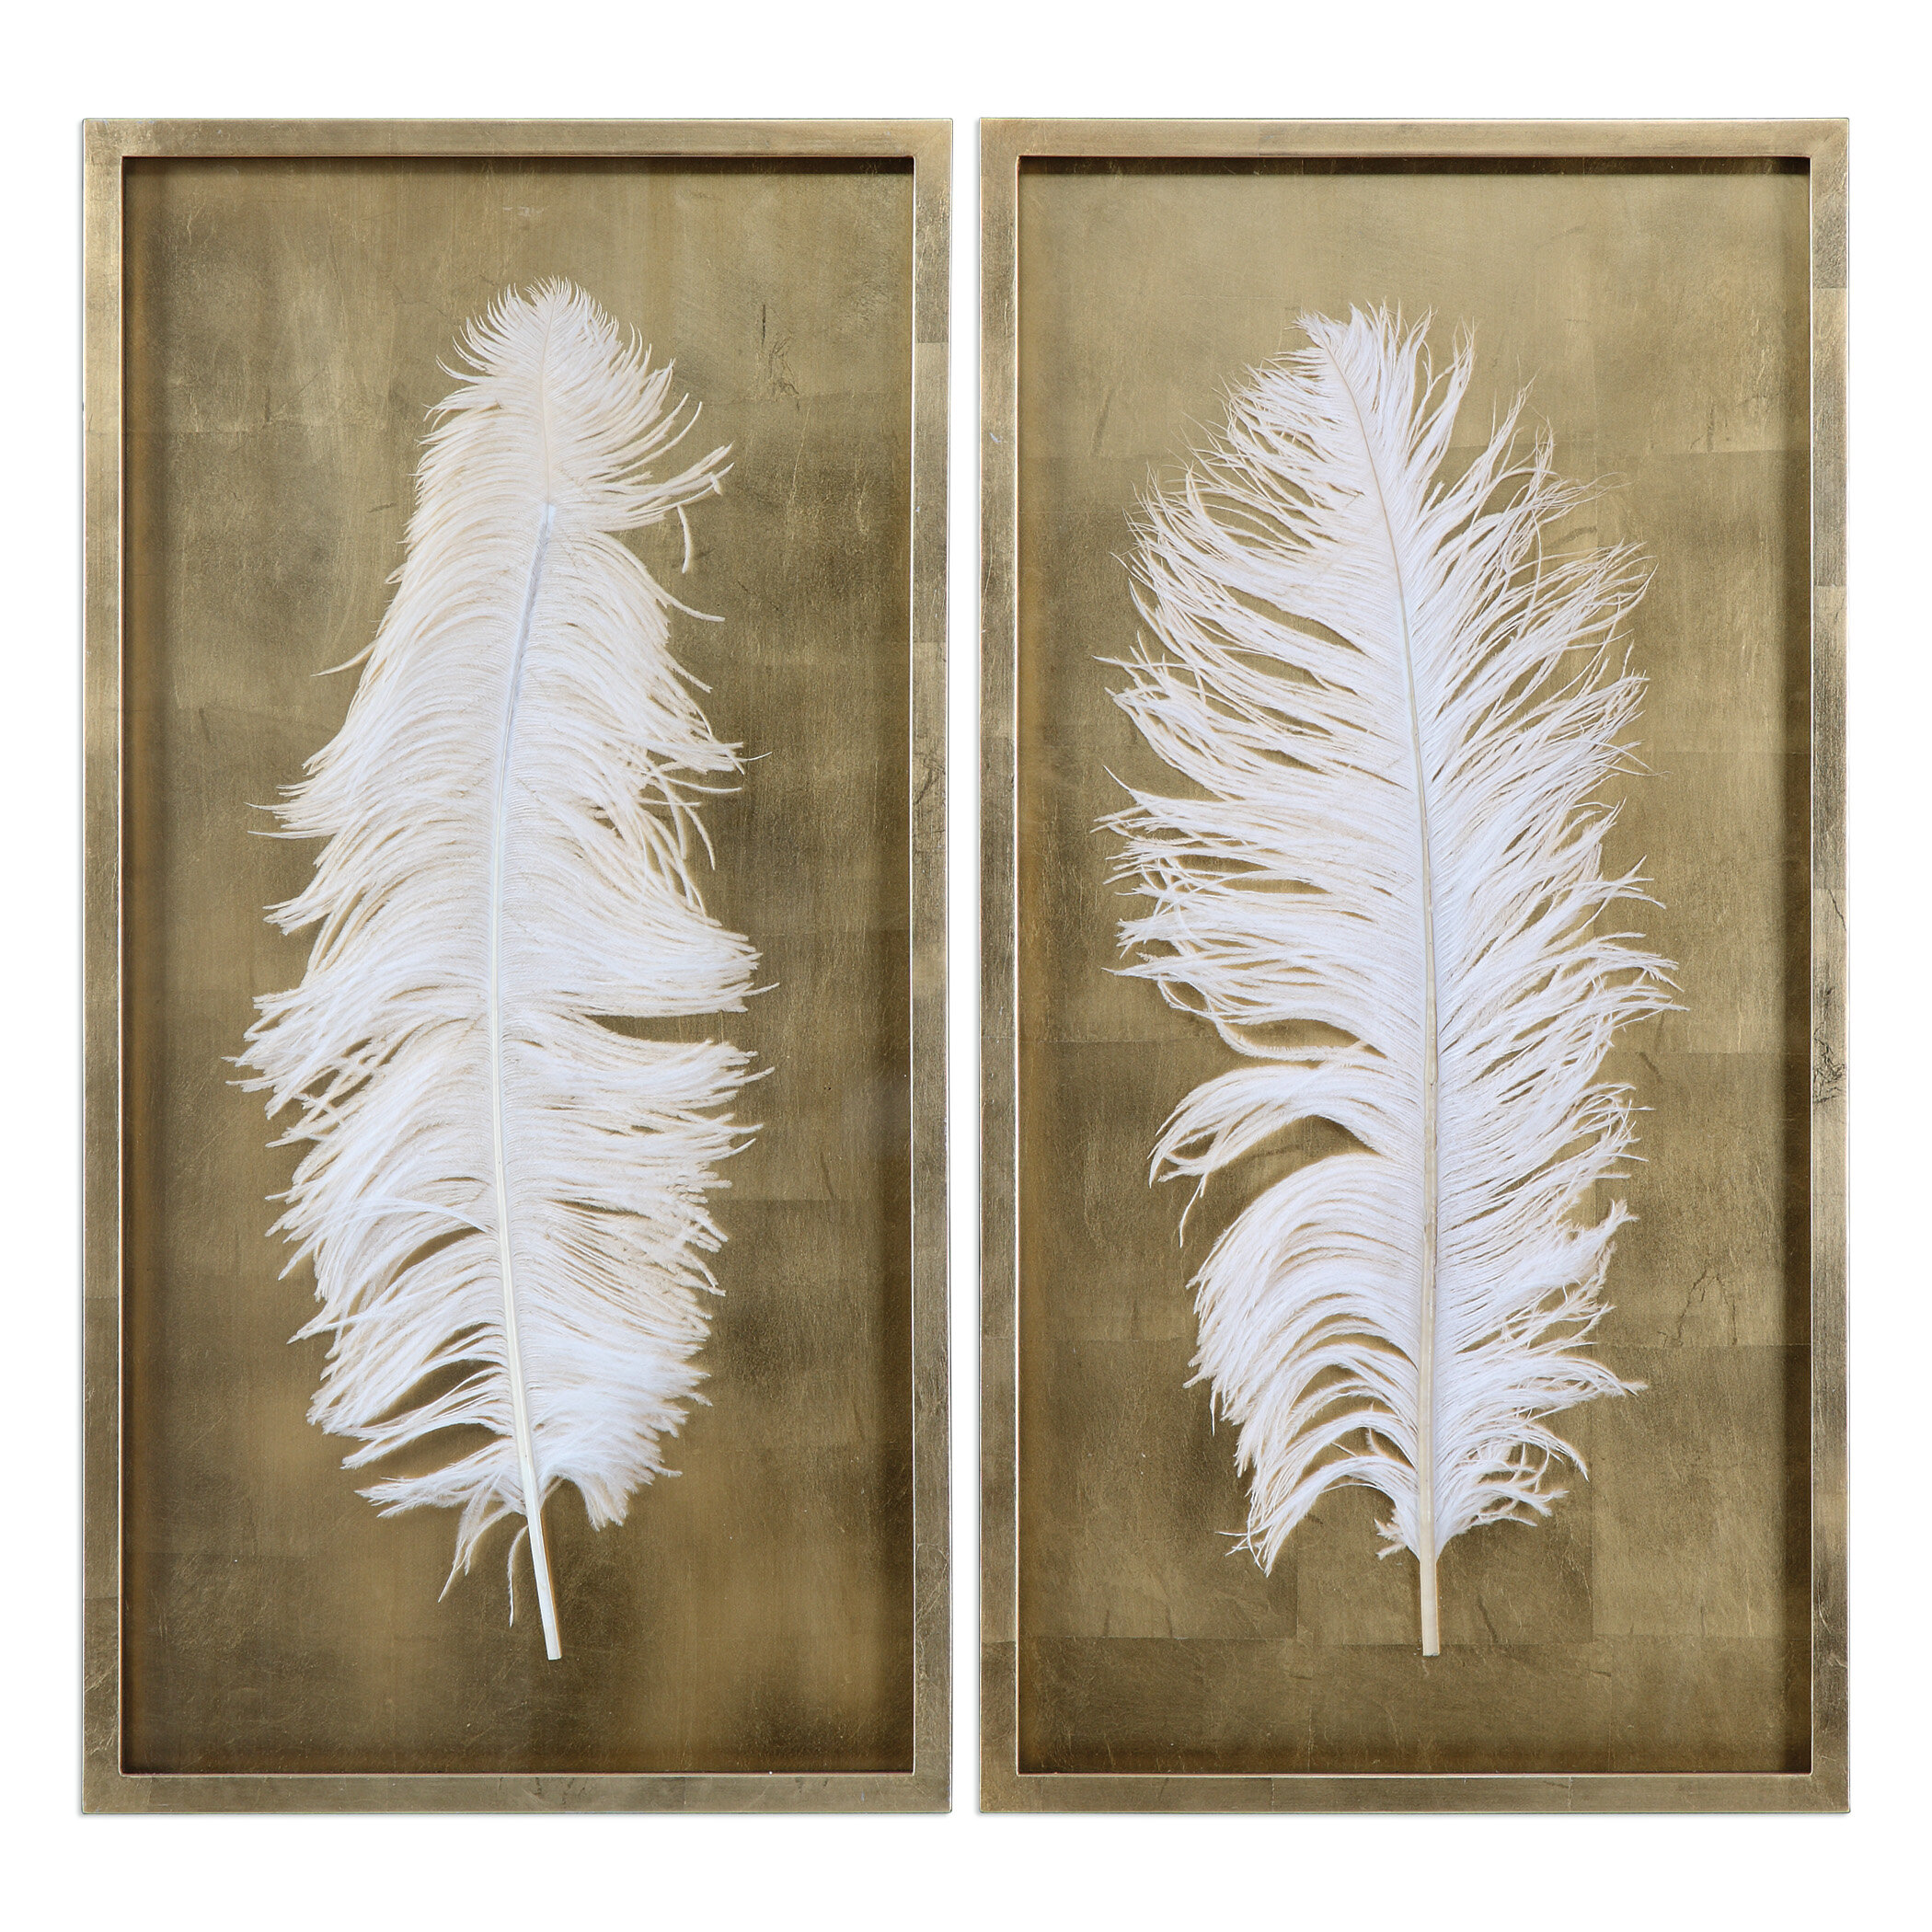 2 Piece Feathers Shadow Box Wall Decor Set Reviews Allmodern